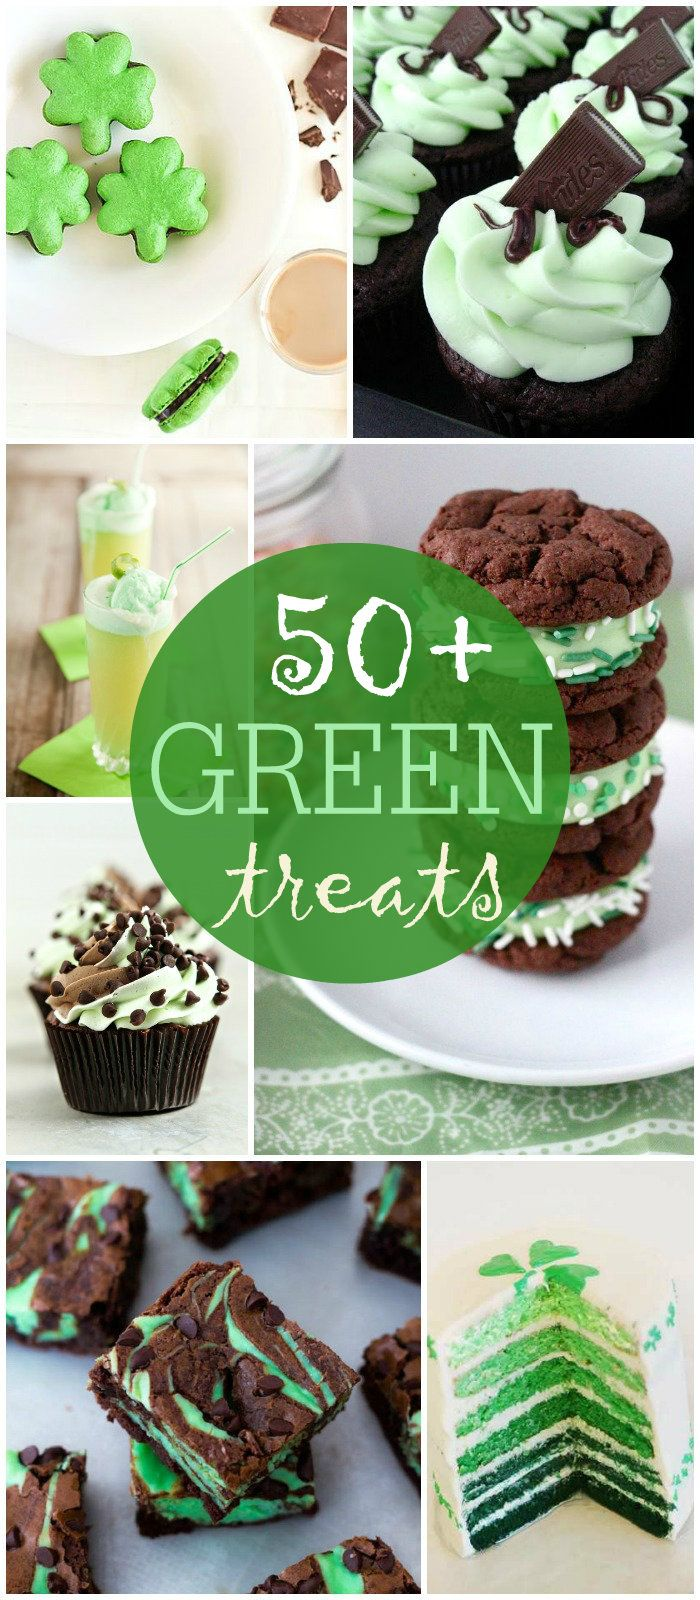 50+ Green Treats perfect for St. Patrick's Day { lilluna.com } #stpatricksday